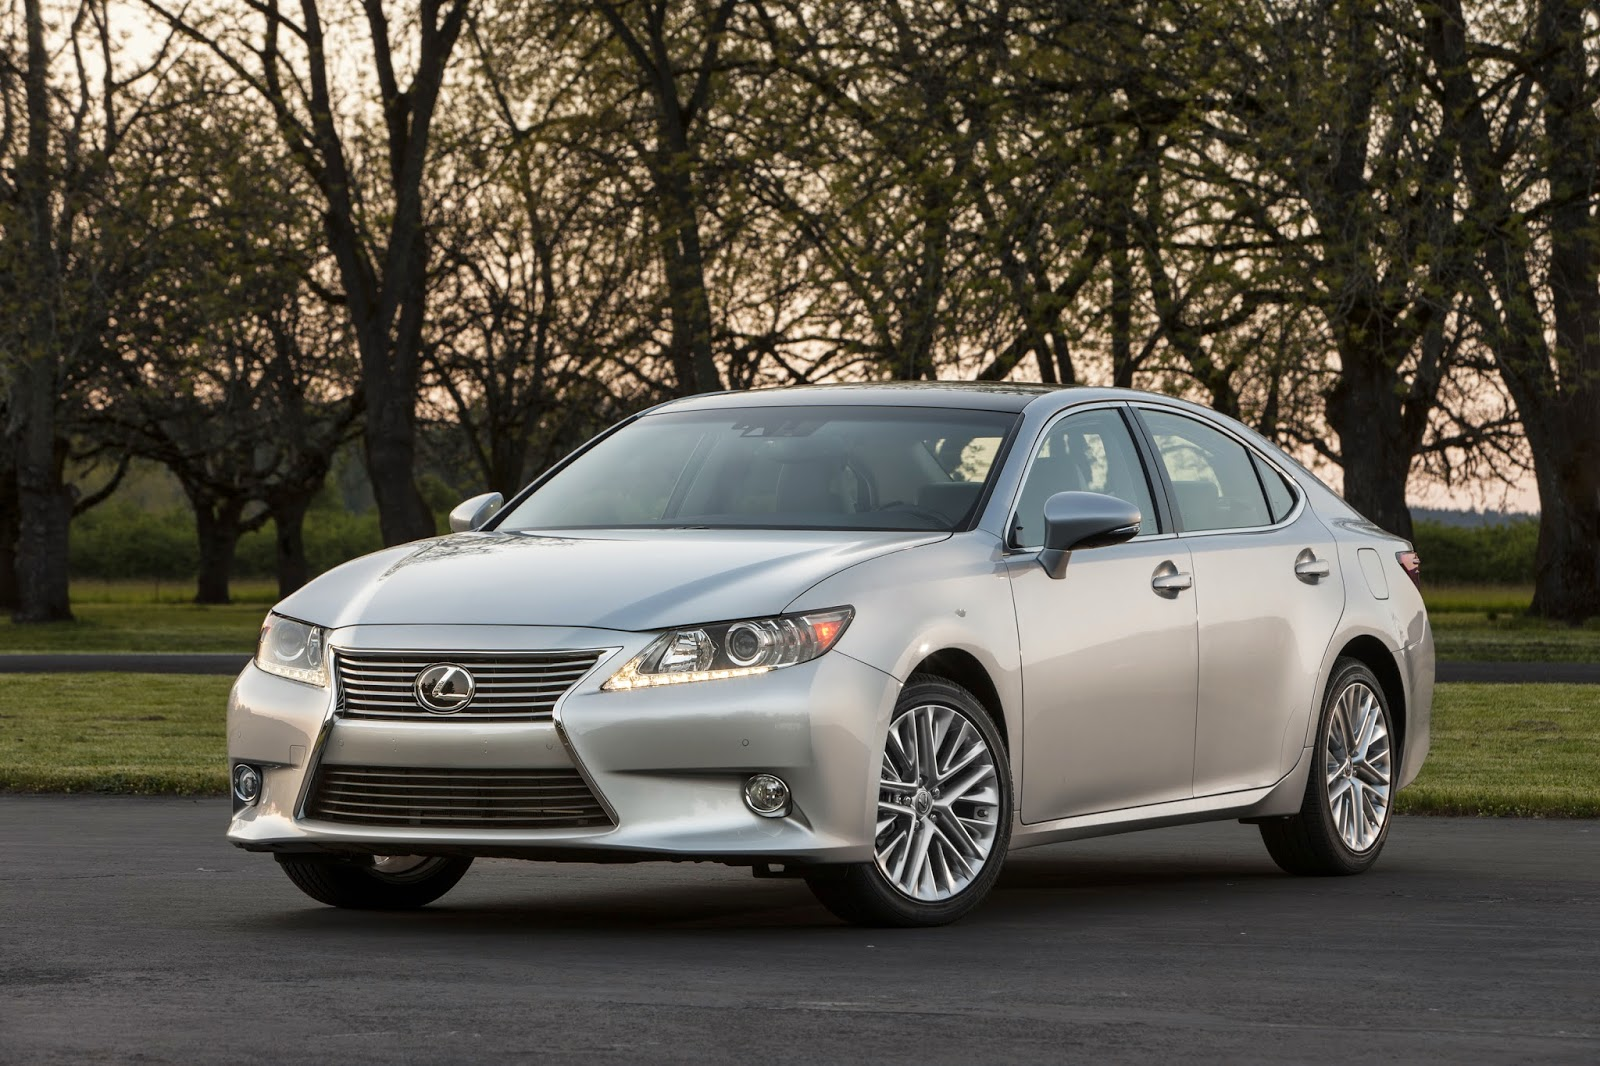 Front 3/4 view of 2014 Lexus ES 350